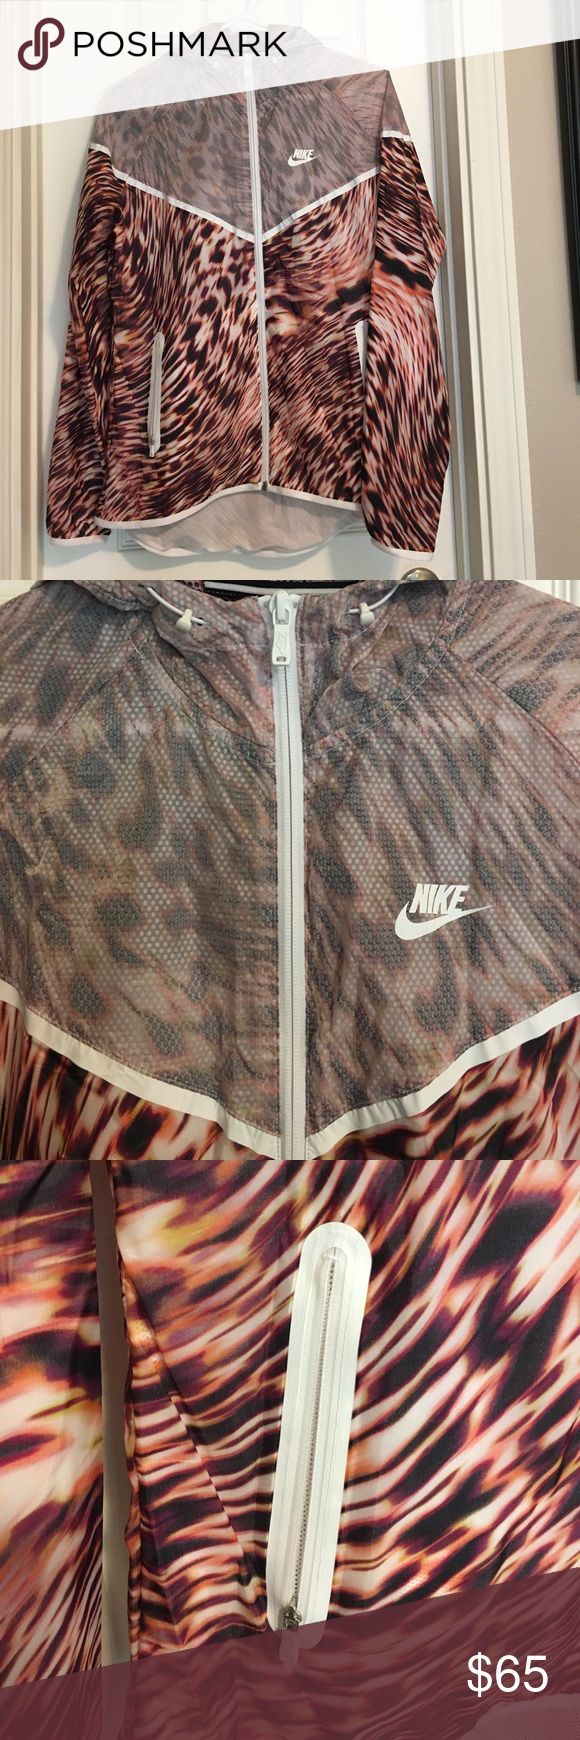 Nike Tech Hyperfuse Running Jacket New without tags. Women's windrunner running jacket. Nike Jackets & Coats